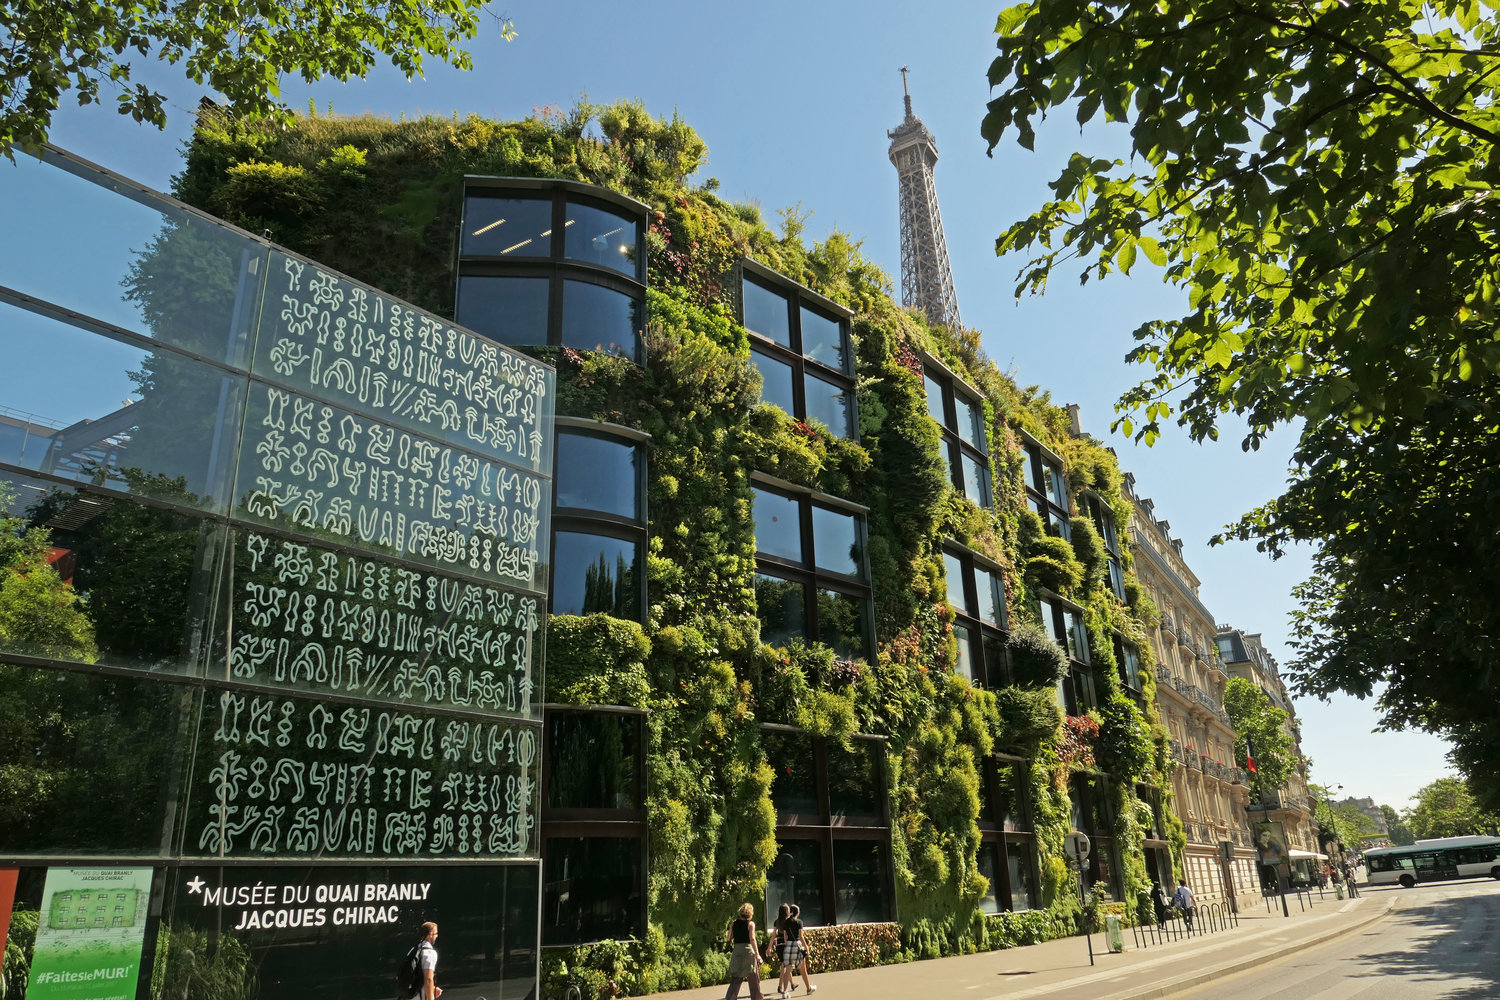 quai branly museum vertical garden patrick blanc. Black Bedroom Furniture Sets. Home Design Ideas